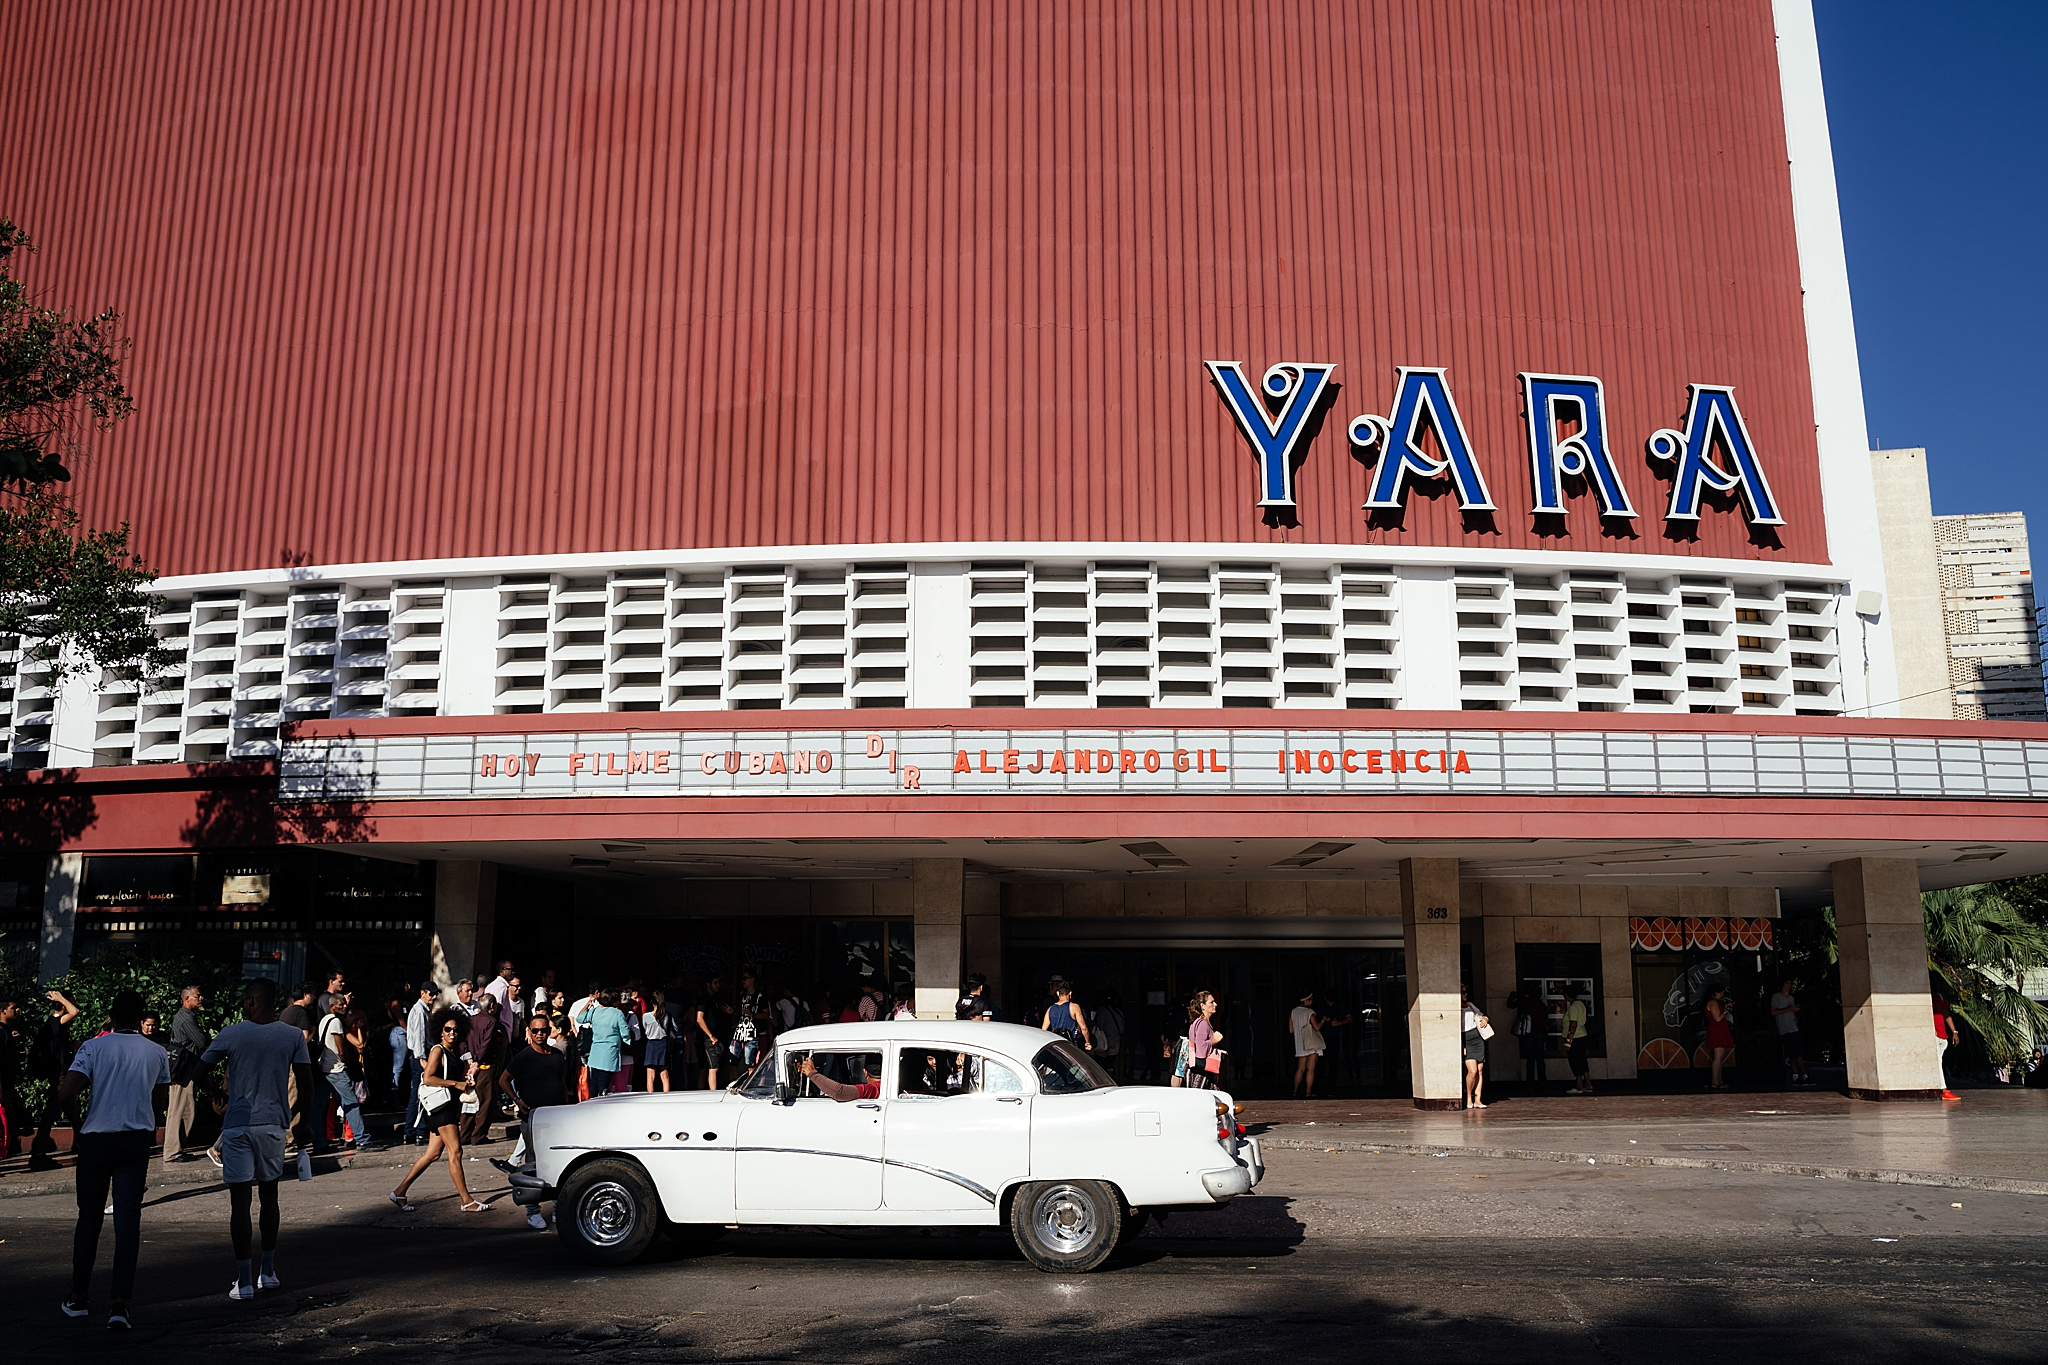 The famous Yara theater in the Vedado neighborhood of Havana Cuba.